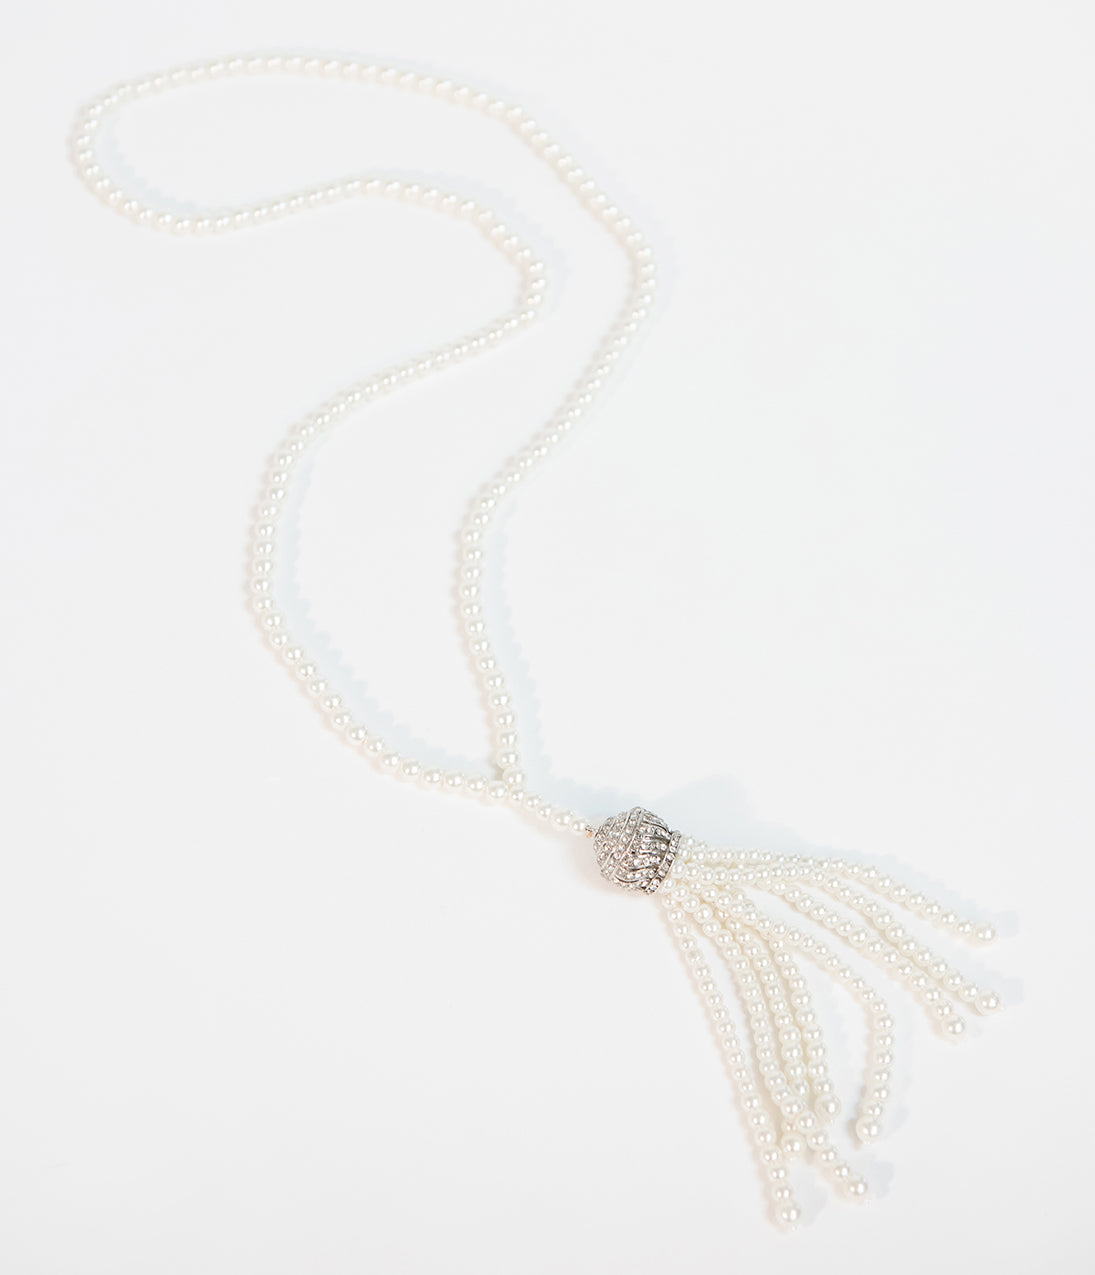 1920s Gatsby Jewelry- Flapper Earrings, Necklaces, Bracelets Unique Vintage Deco Style Ivory Pearl  Silver Tassel Necklace $24.00 AT vintagedancer.com